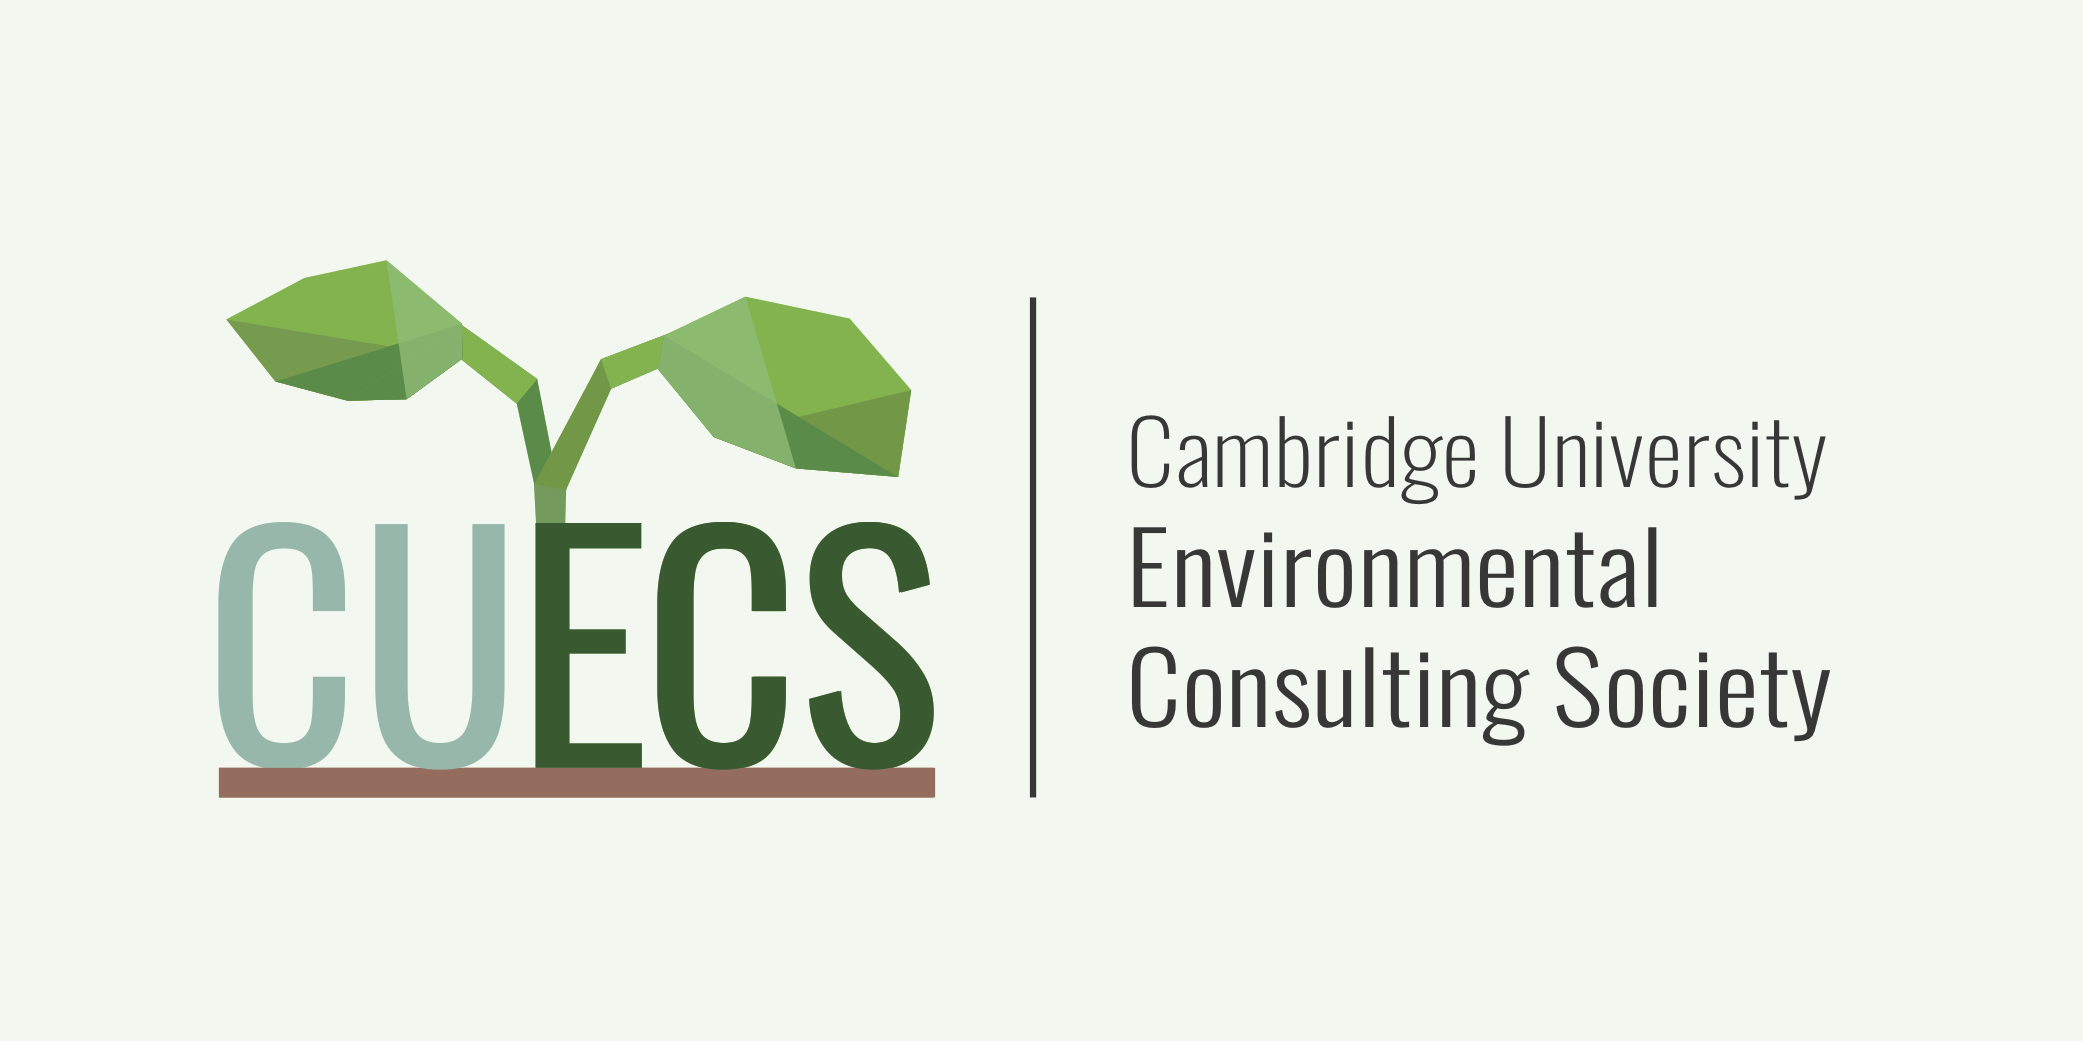 Cambridge University Environmental Consulting Society